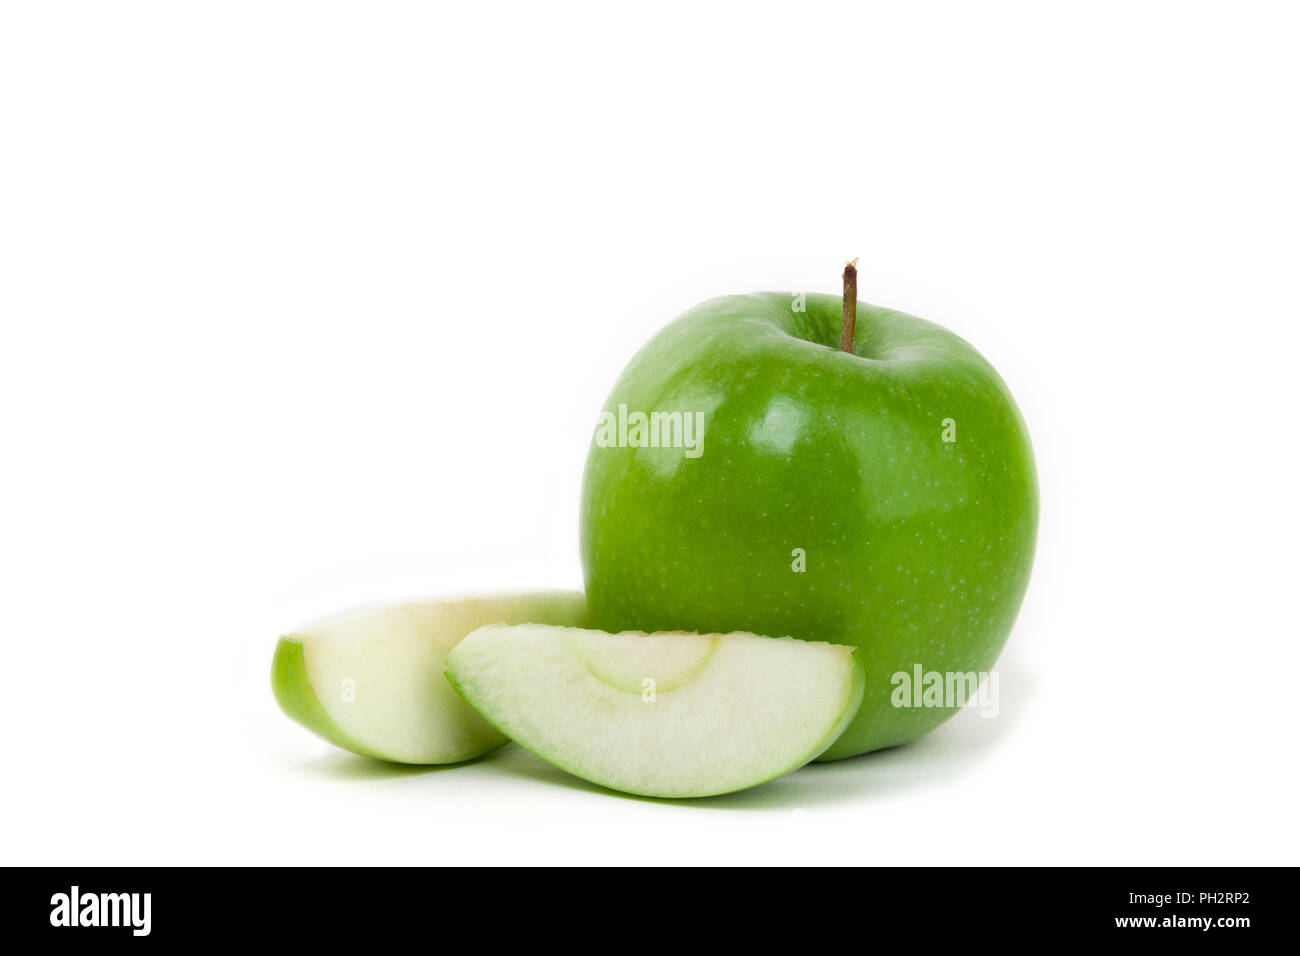 Granny smith apple and apple slices on isolated white background - Stock Image